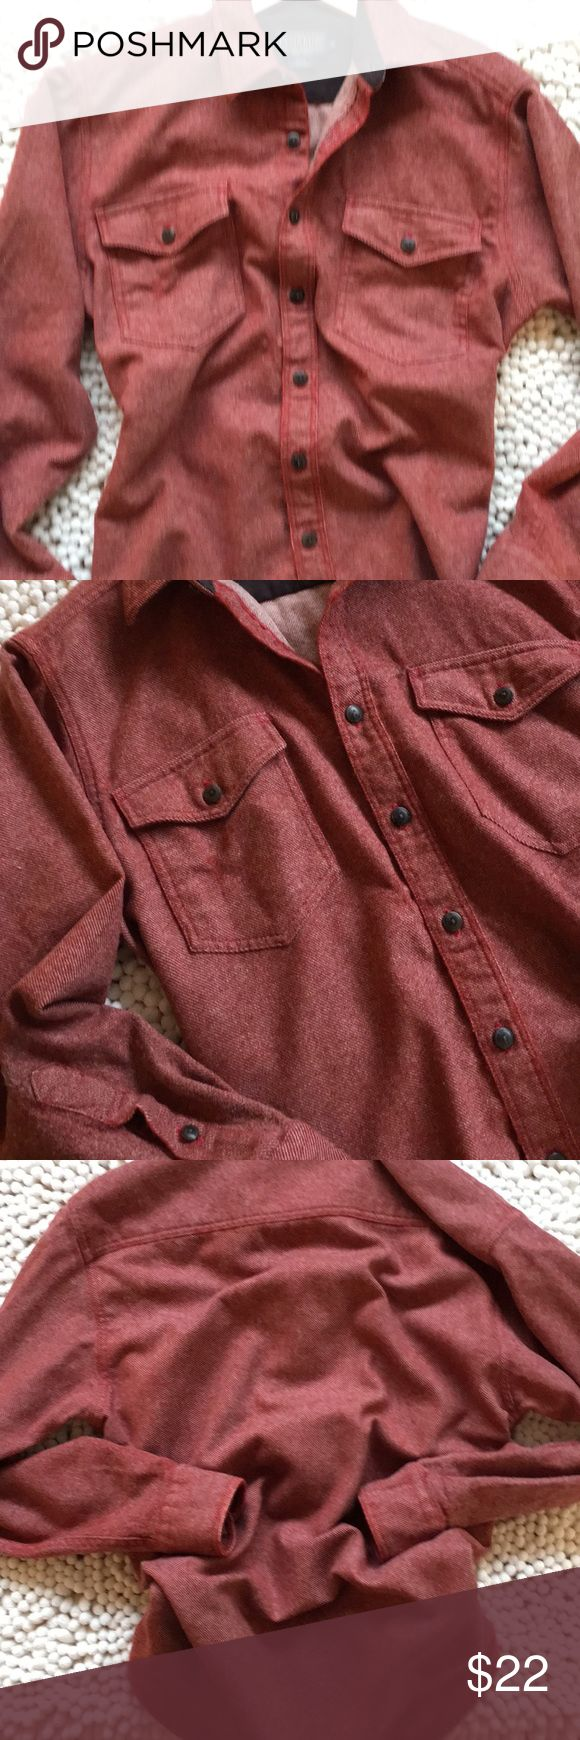 Pendleton Woolen Mills Cascade Button Up Shirt Great condition size m 31 inches long 21 inch chest 23 inch sleeve buttons up the front two pockets on the front no rips no tears no stains non-smoking environment💕 Pendleton Shirts